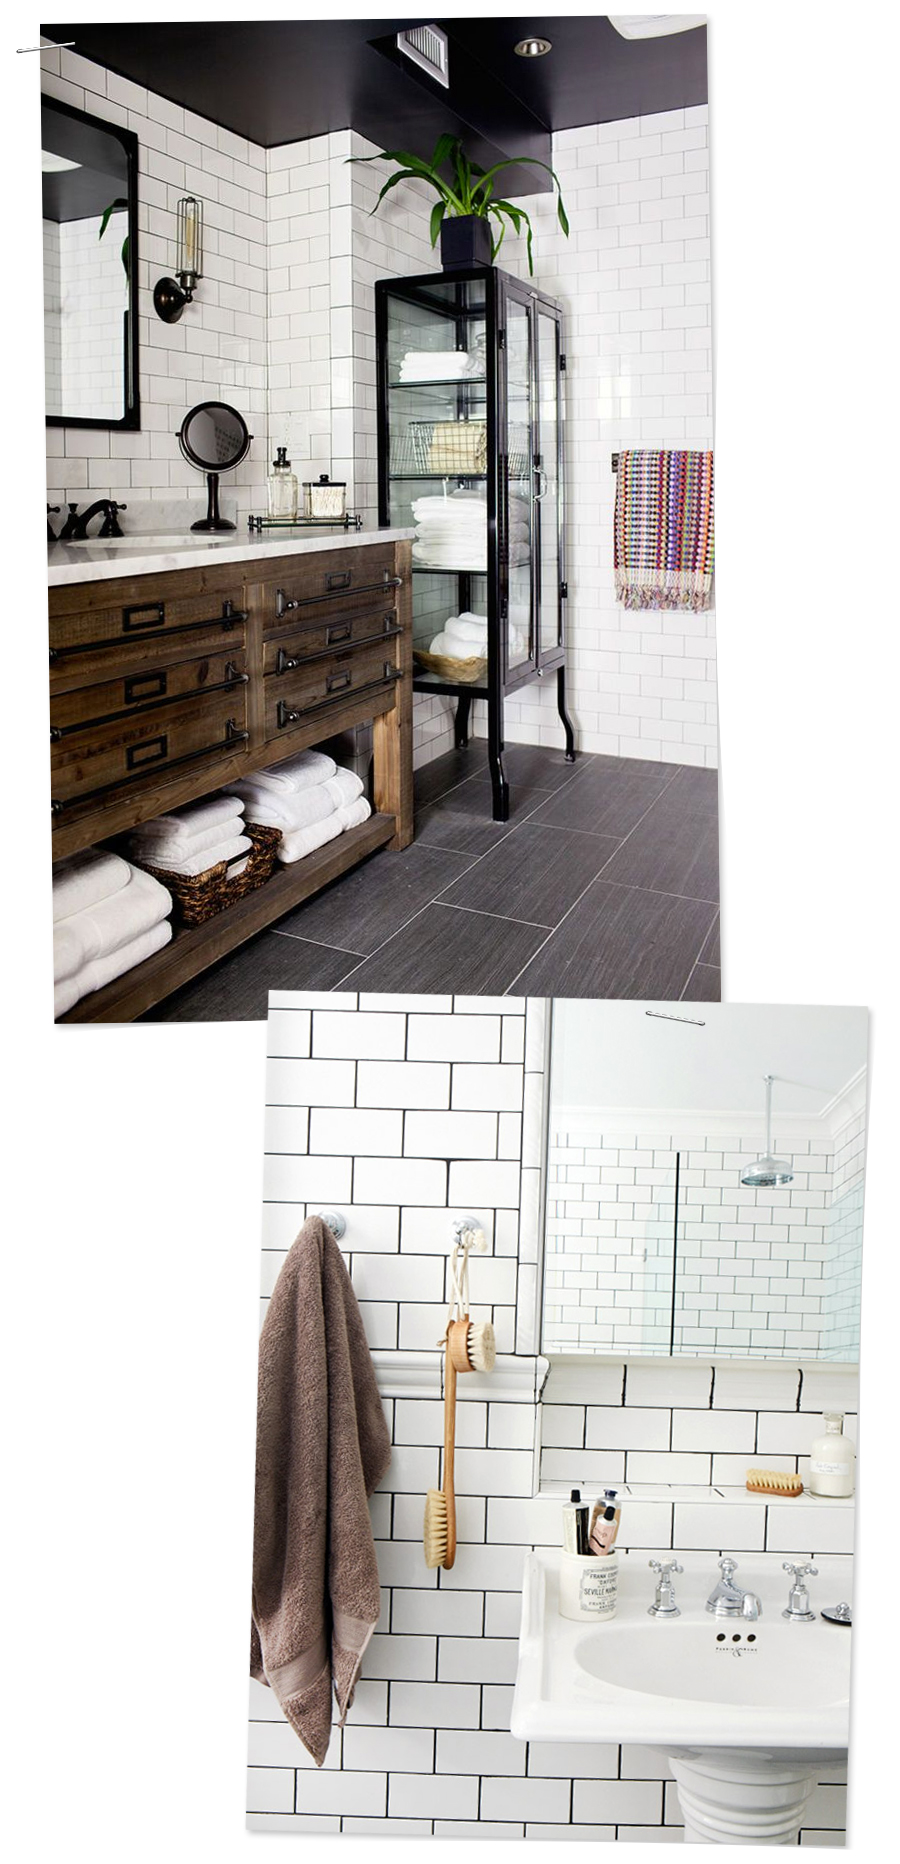 Inspirational Bathrooms : Subway Tile, Black floors, and lots of natural texture